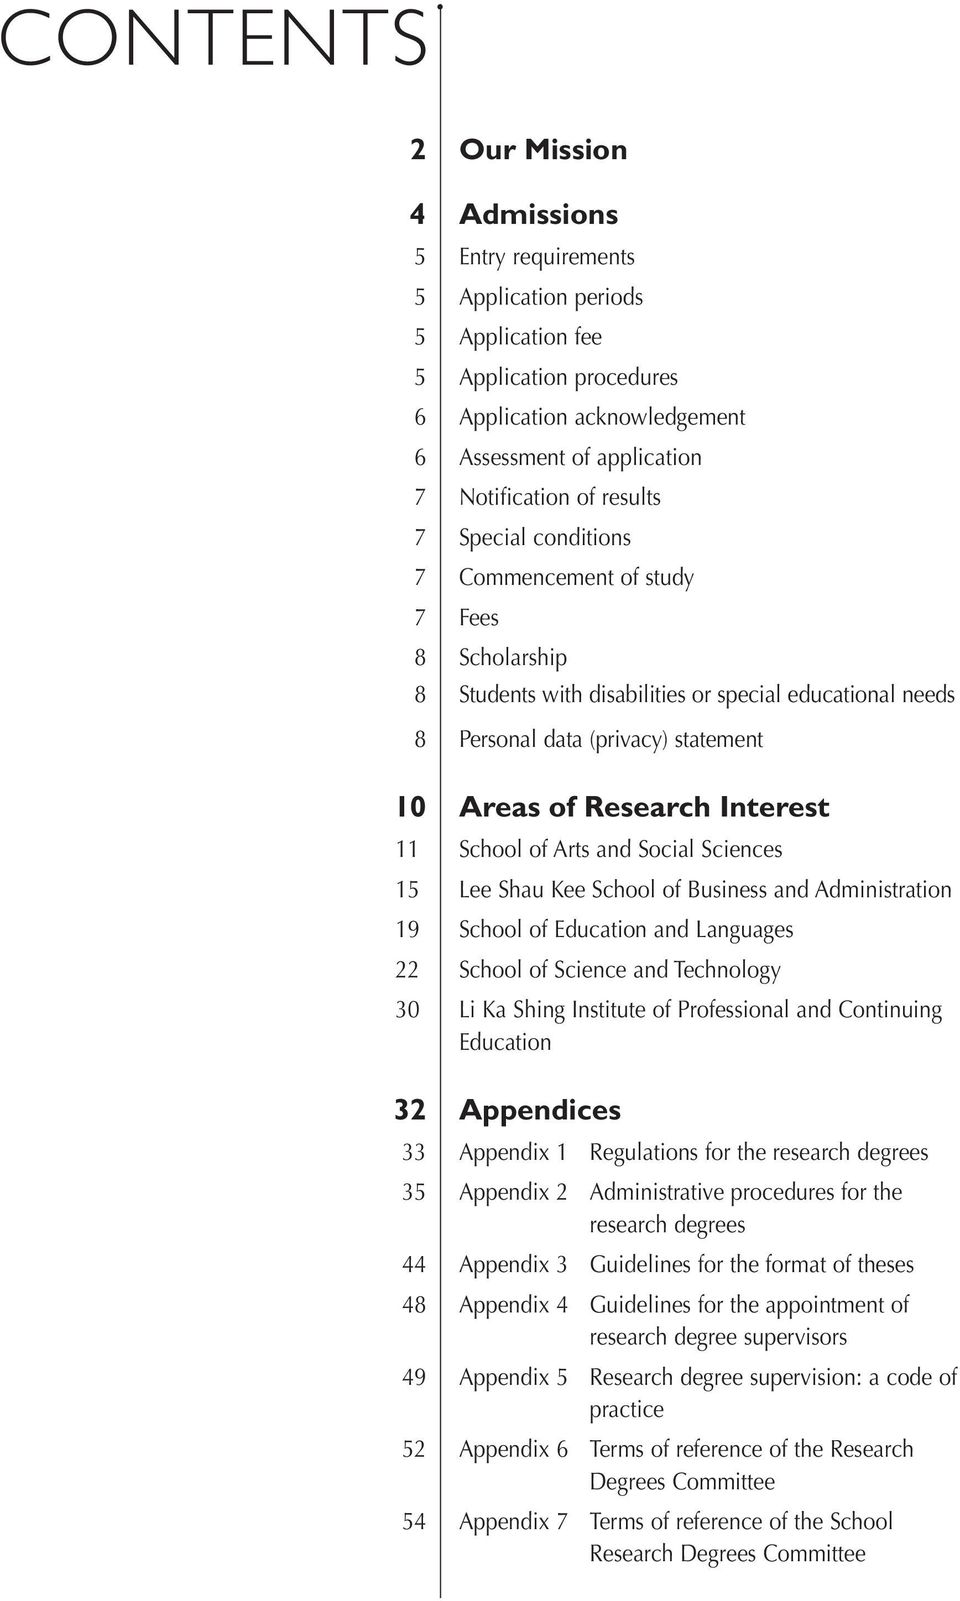 Guidebook For Research Degree Programmes Pdf 3d Plant Cell Diagram 8 Grade Image Galleries Imagekbcom 11 School Of Arts And Social Sciences 15 Lee Shau Kee Business Administration